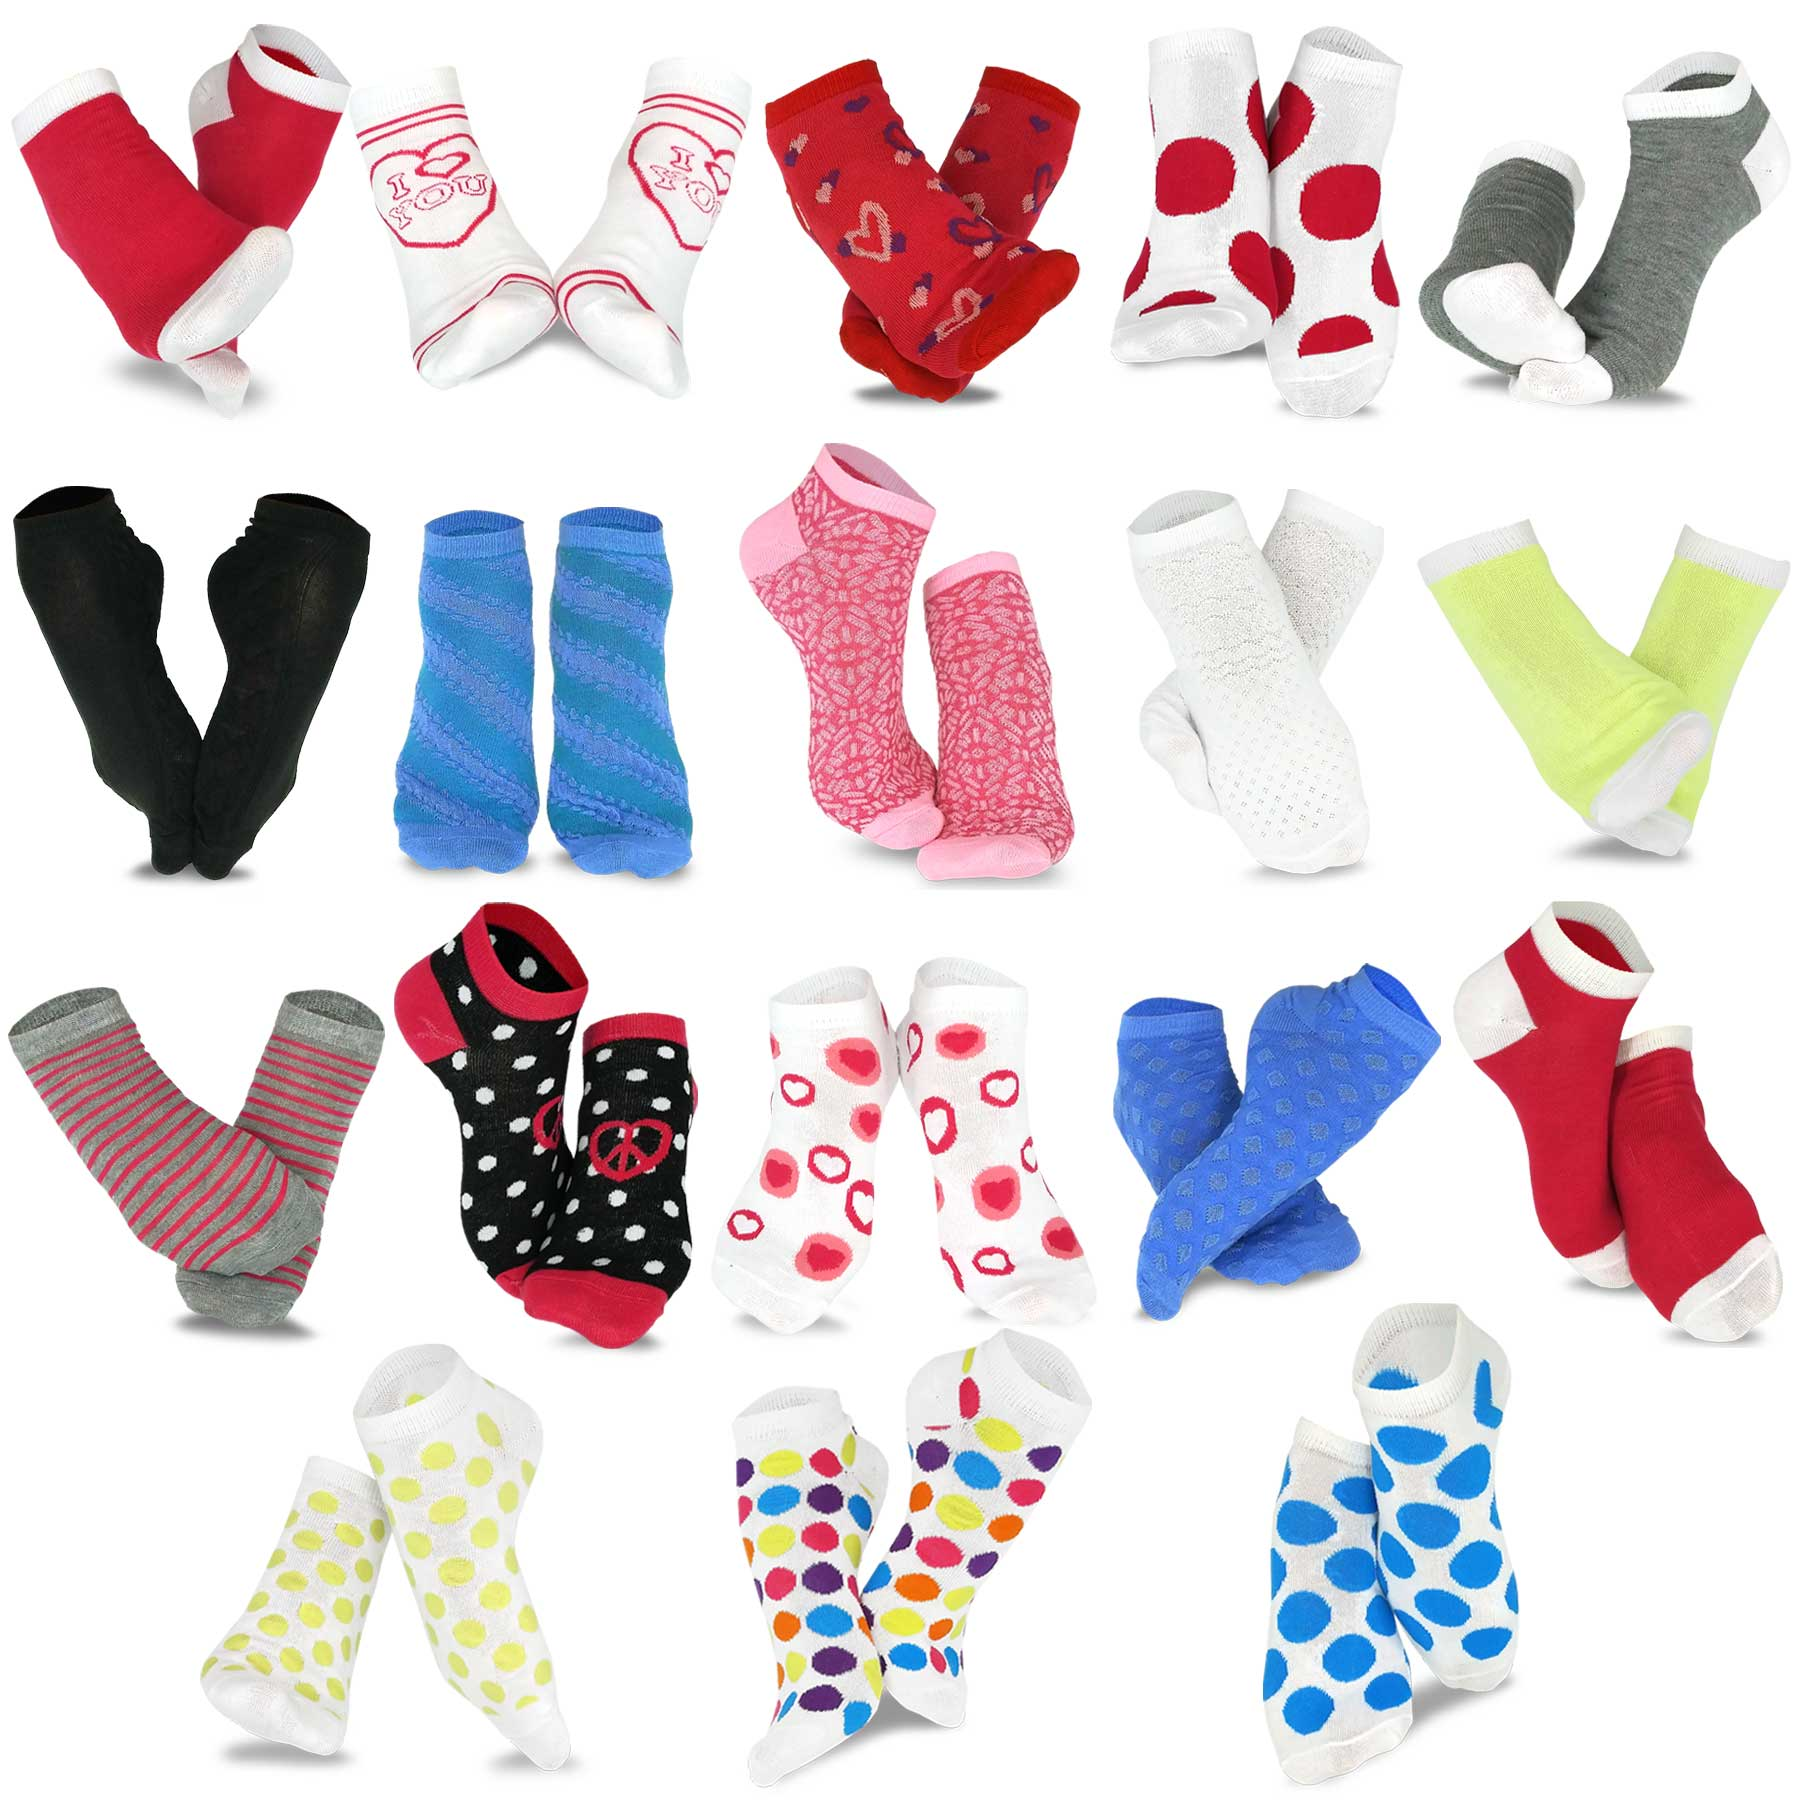 gift red heart socks clothes Red accent  short socks cute socks fashion heart socks cotton cool socks new